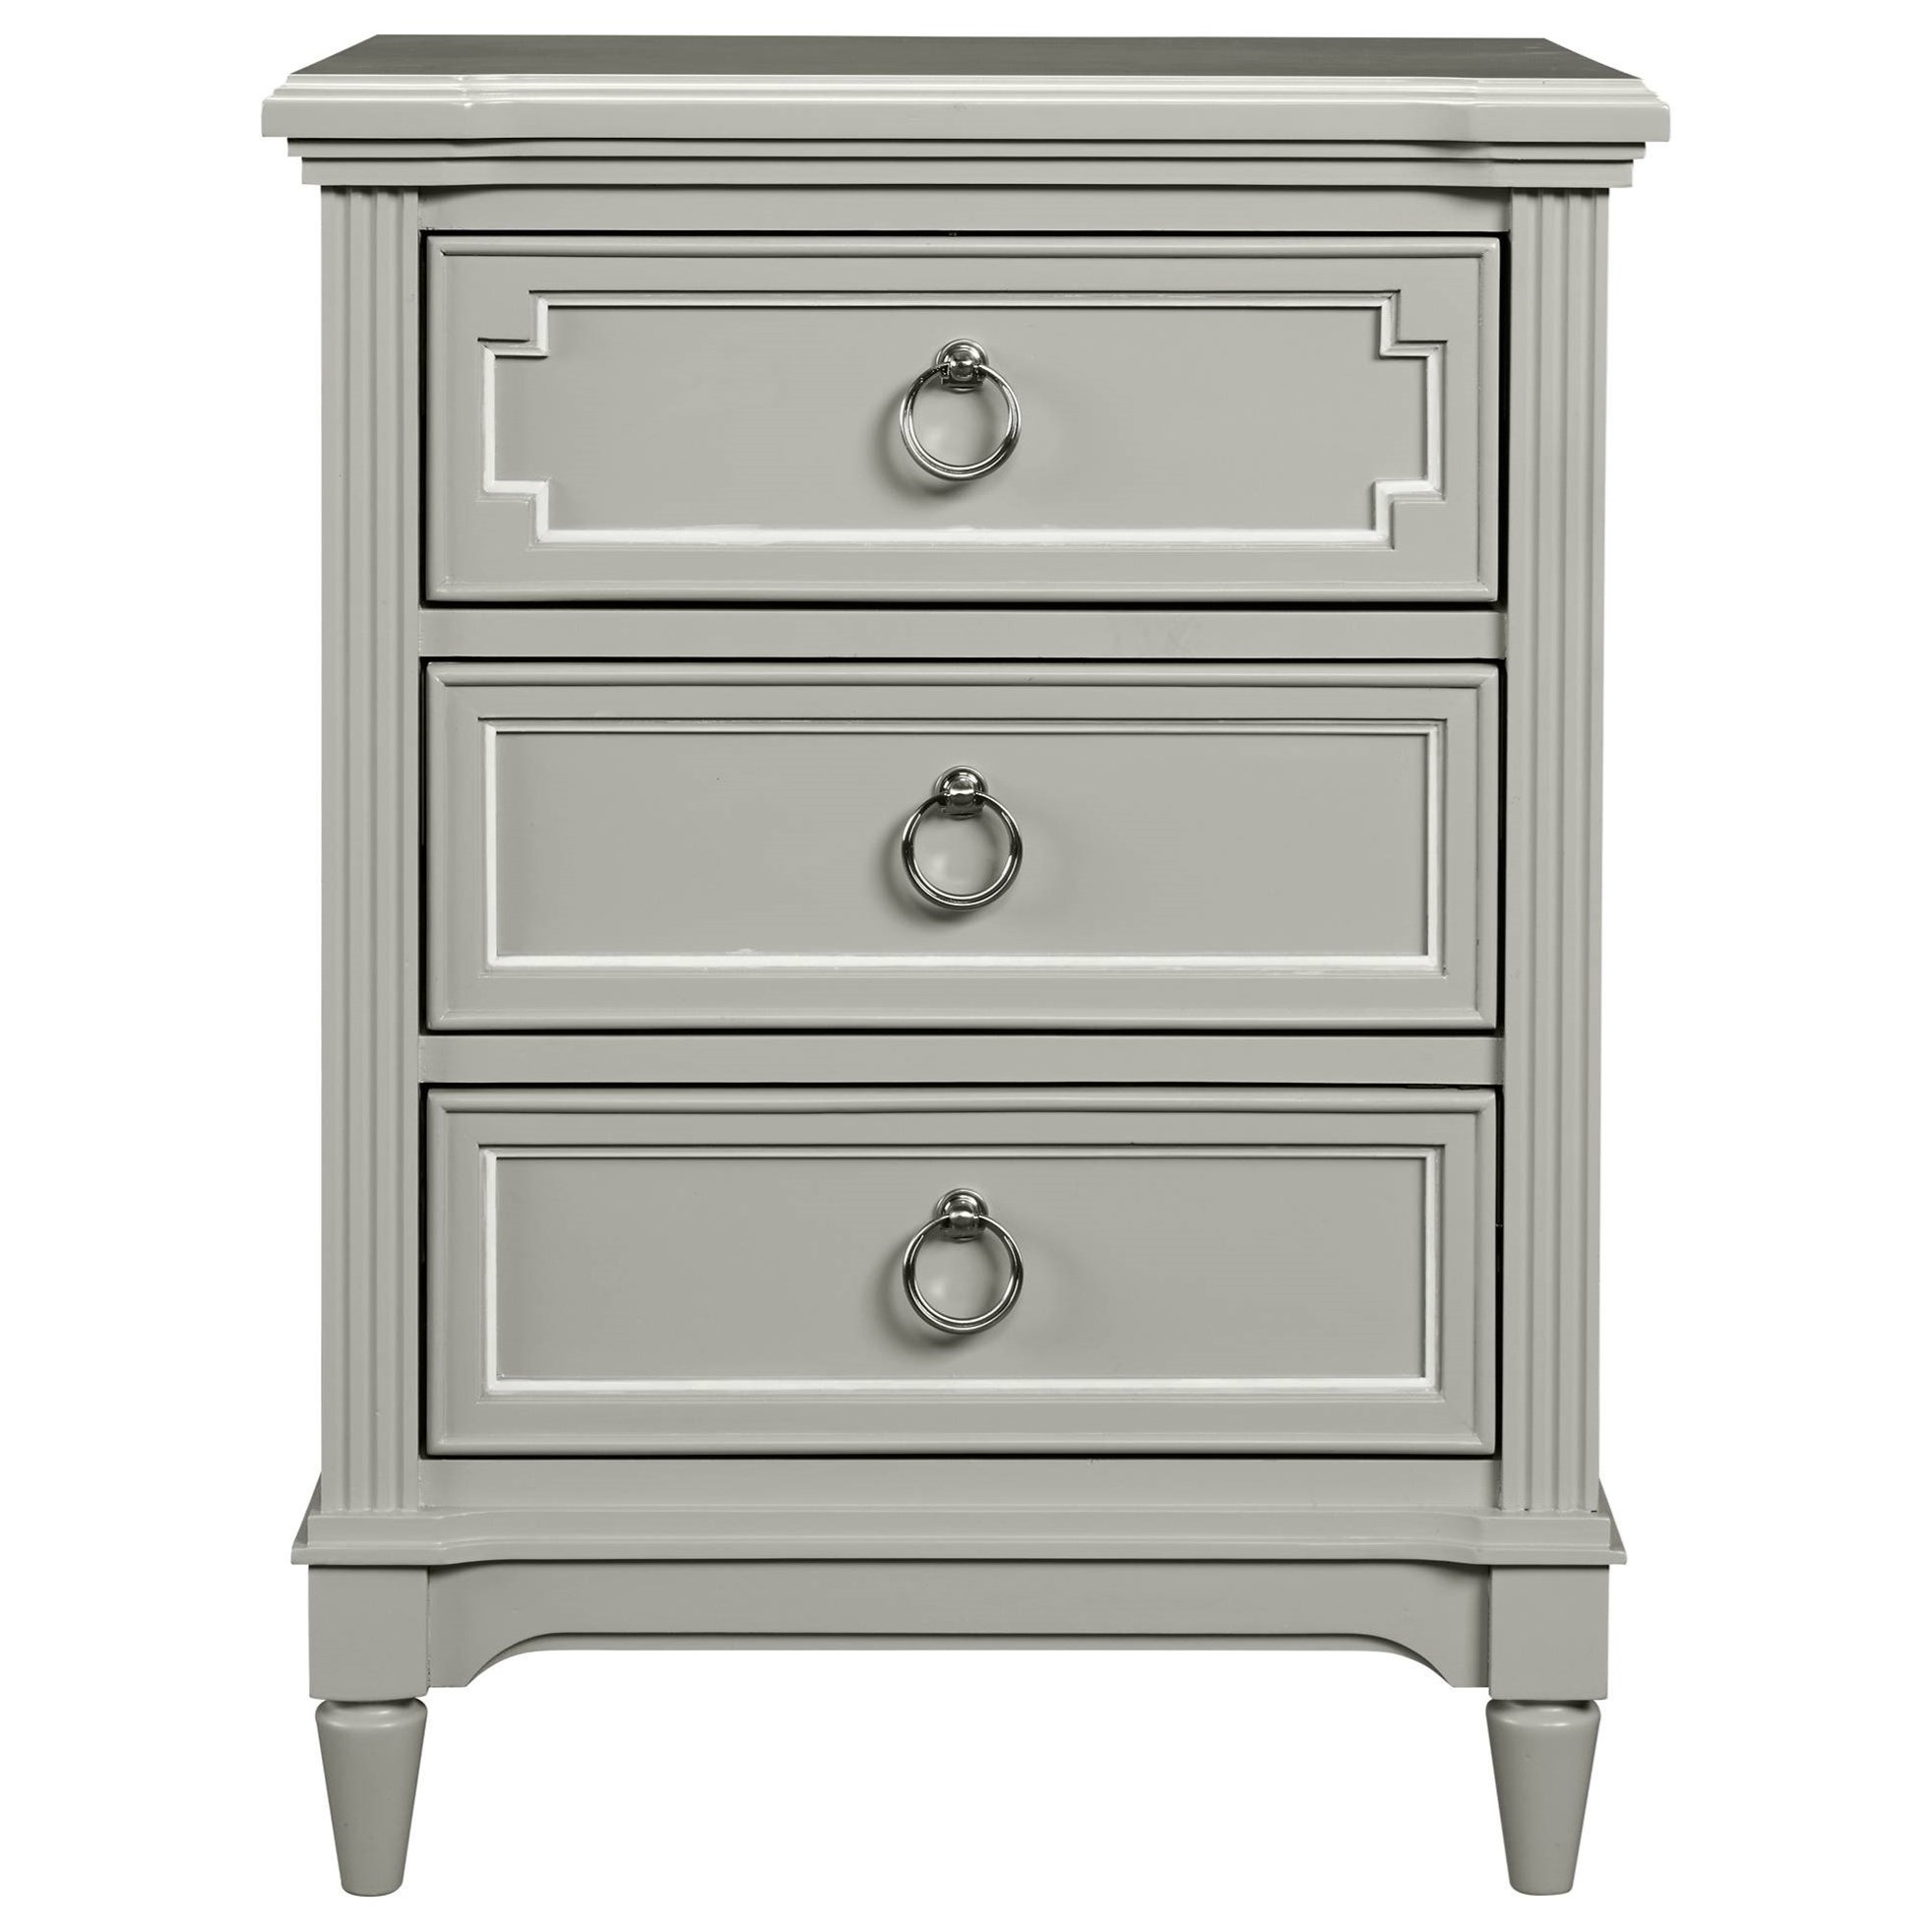 Stone & Leigh Furniture Clementine Court Nightstand - Item Number: 537-53-82